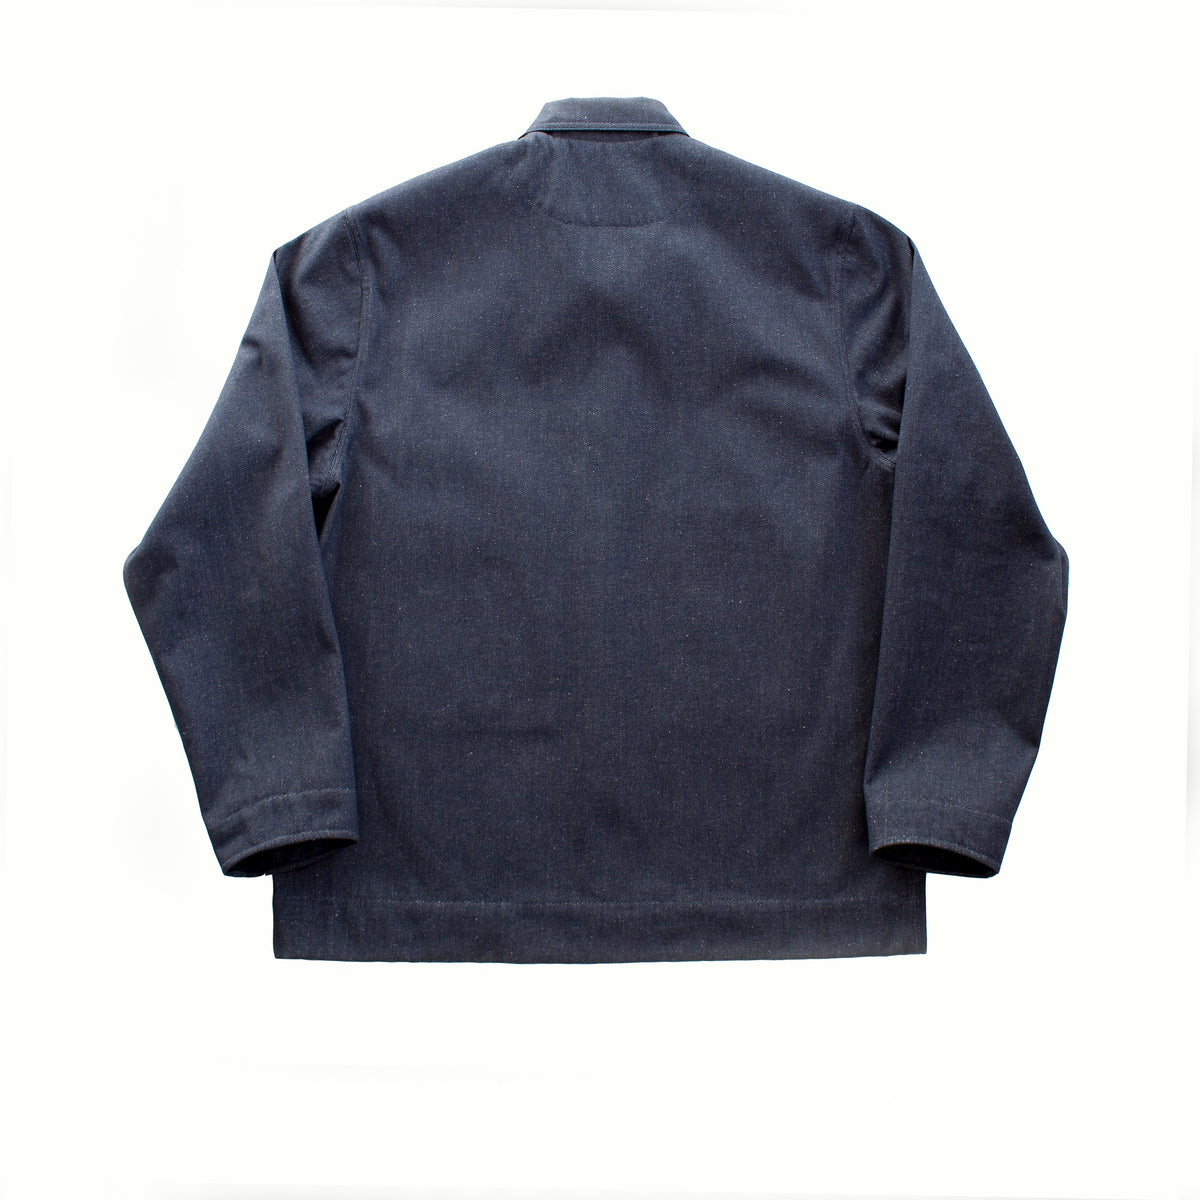 Workers jacket recycled denim